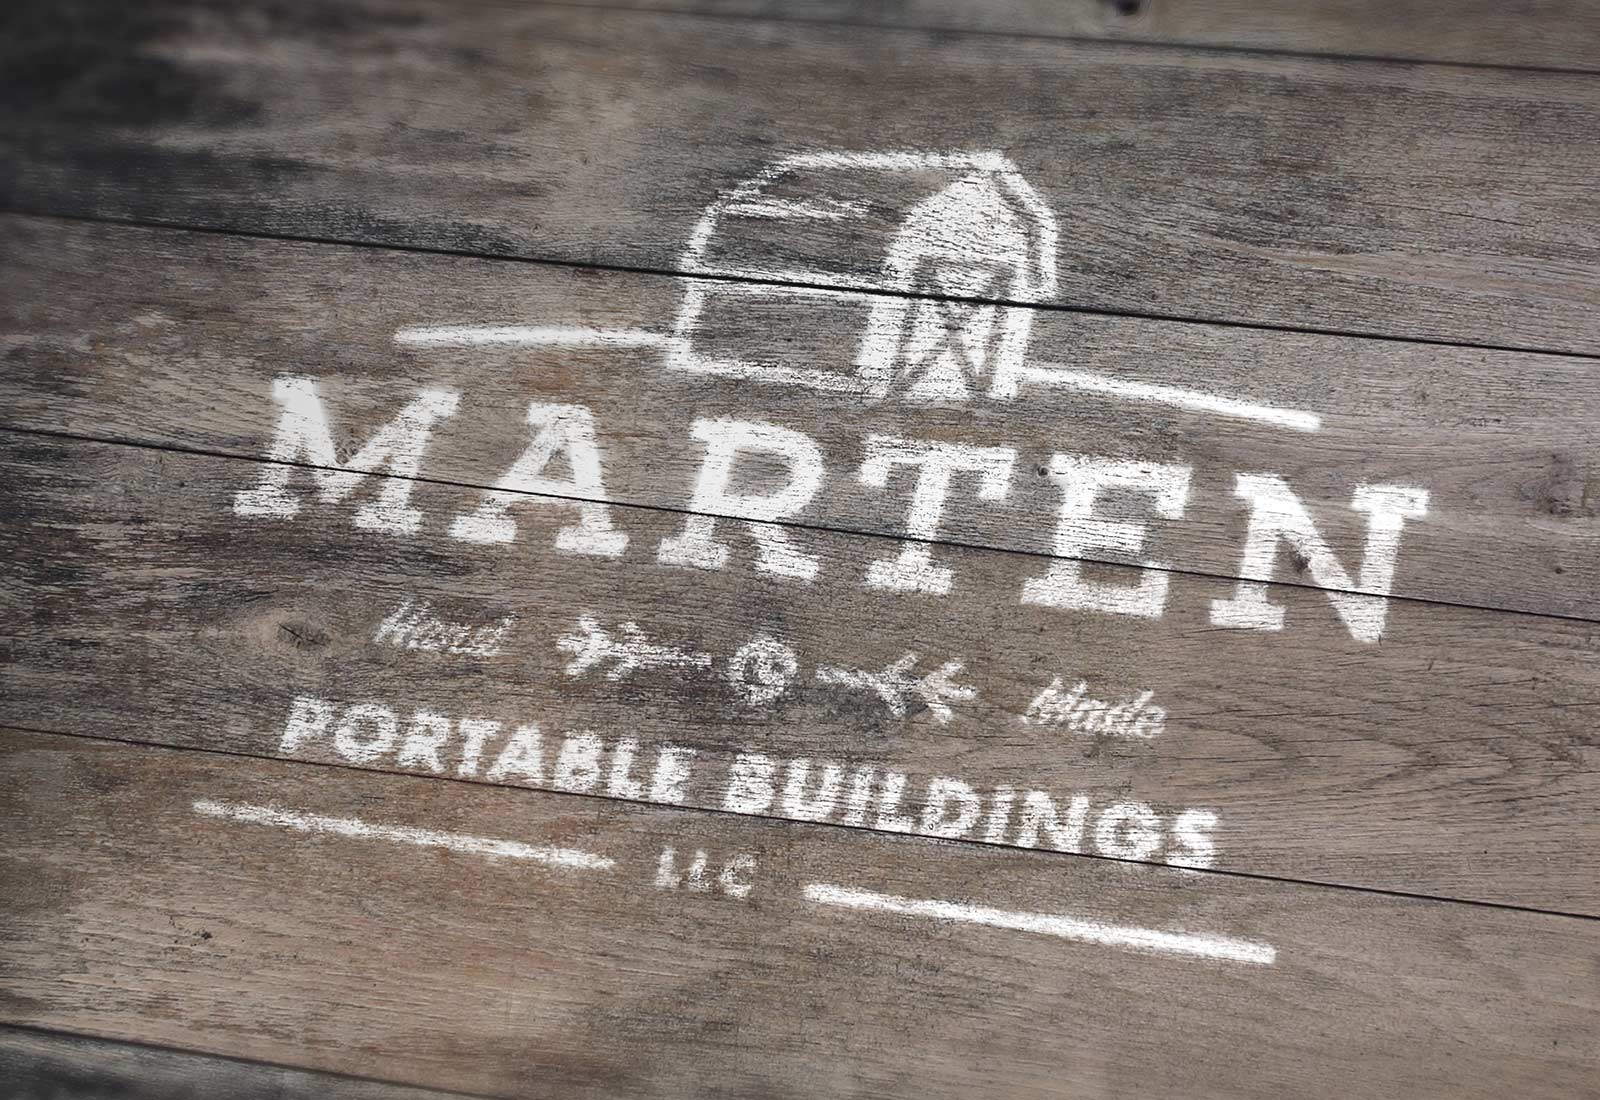 Marten Portable Buildings Logo Painted On Wood